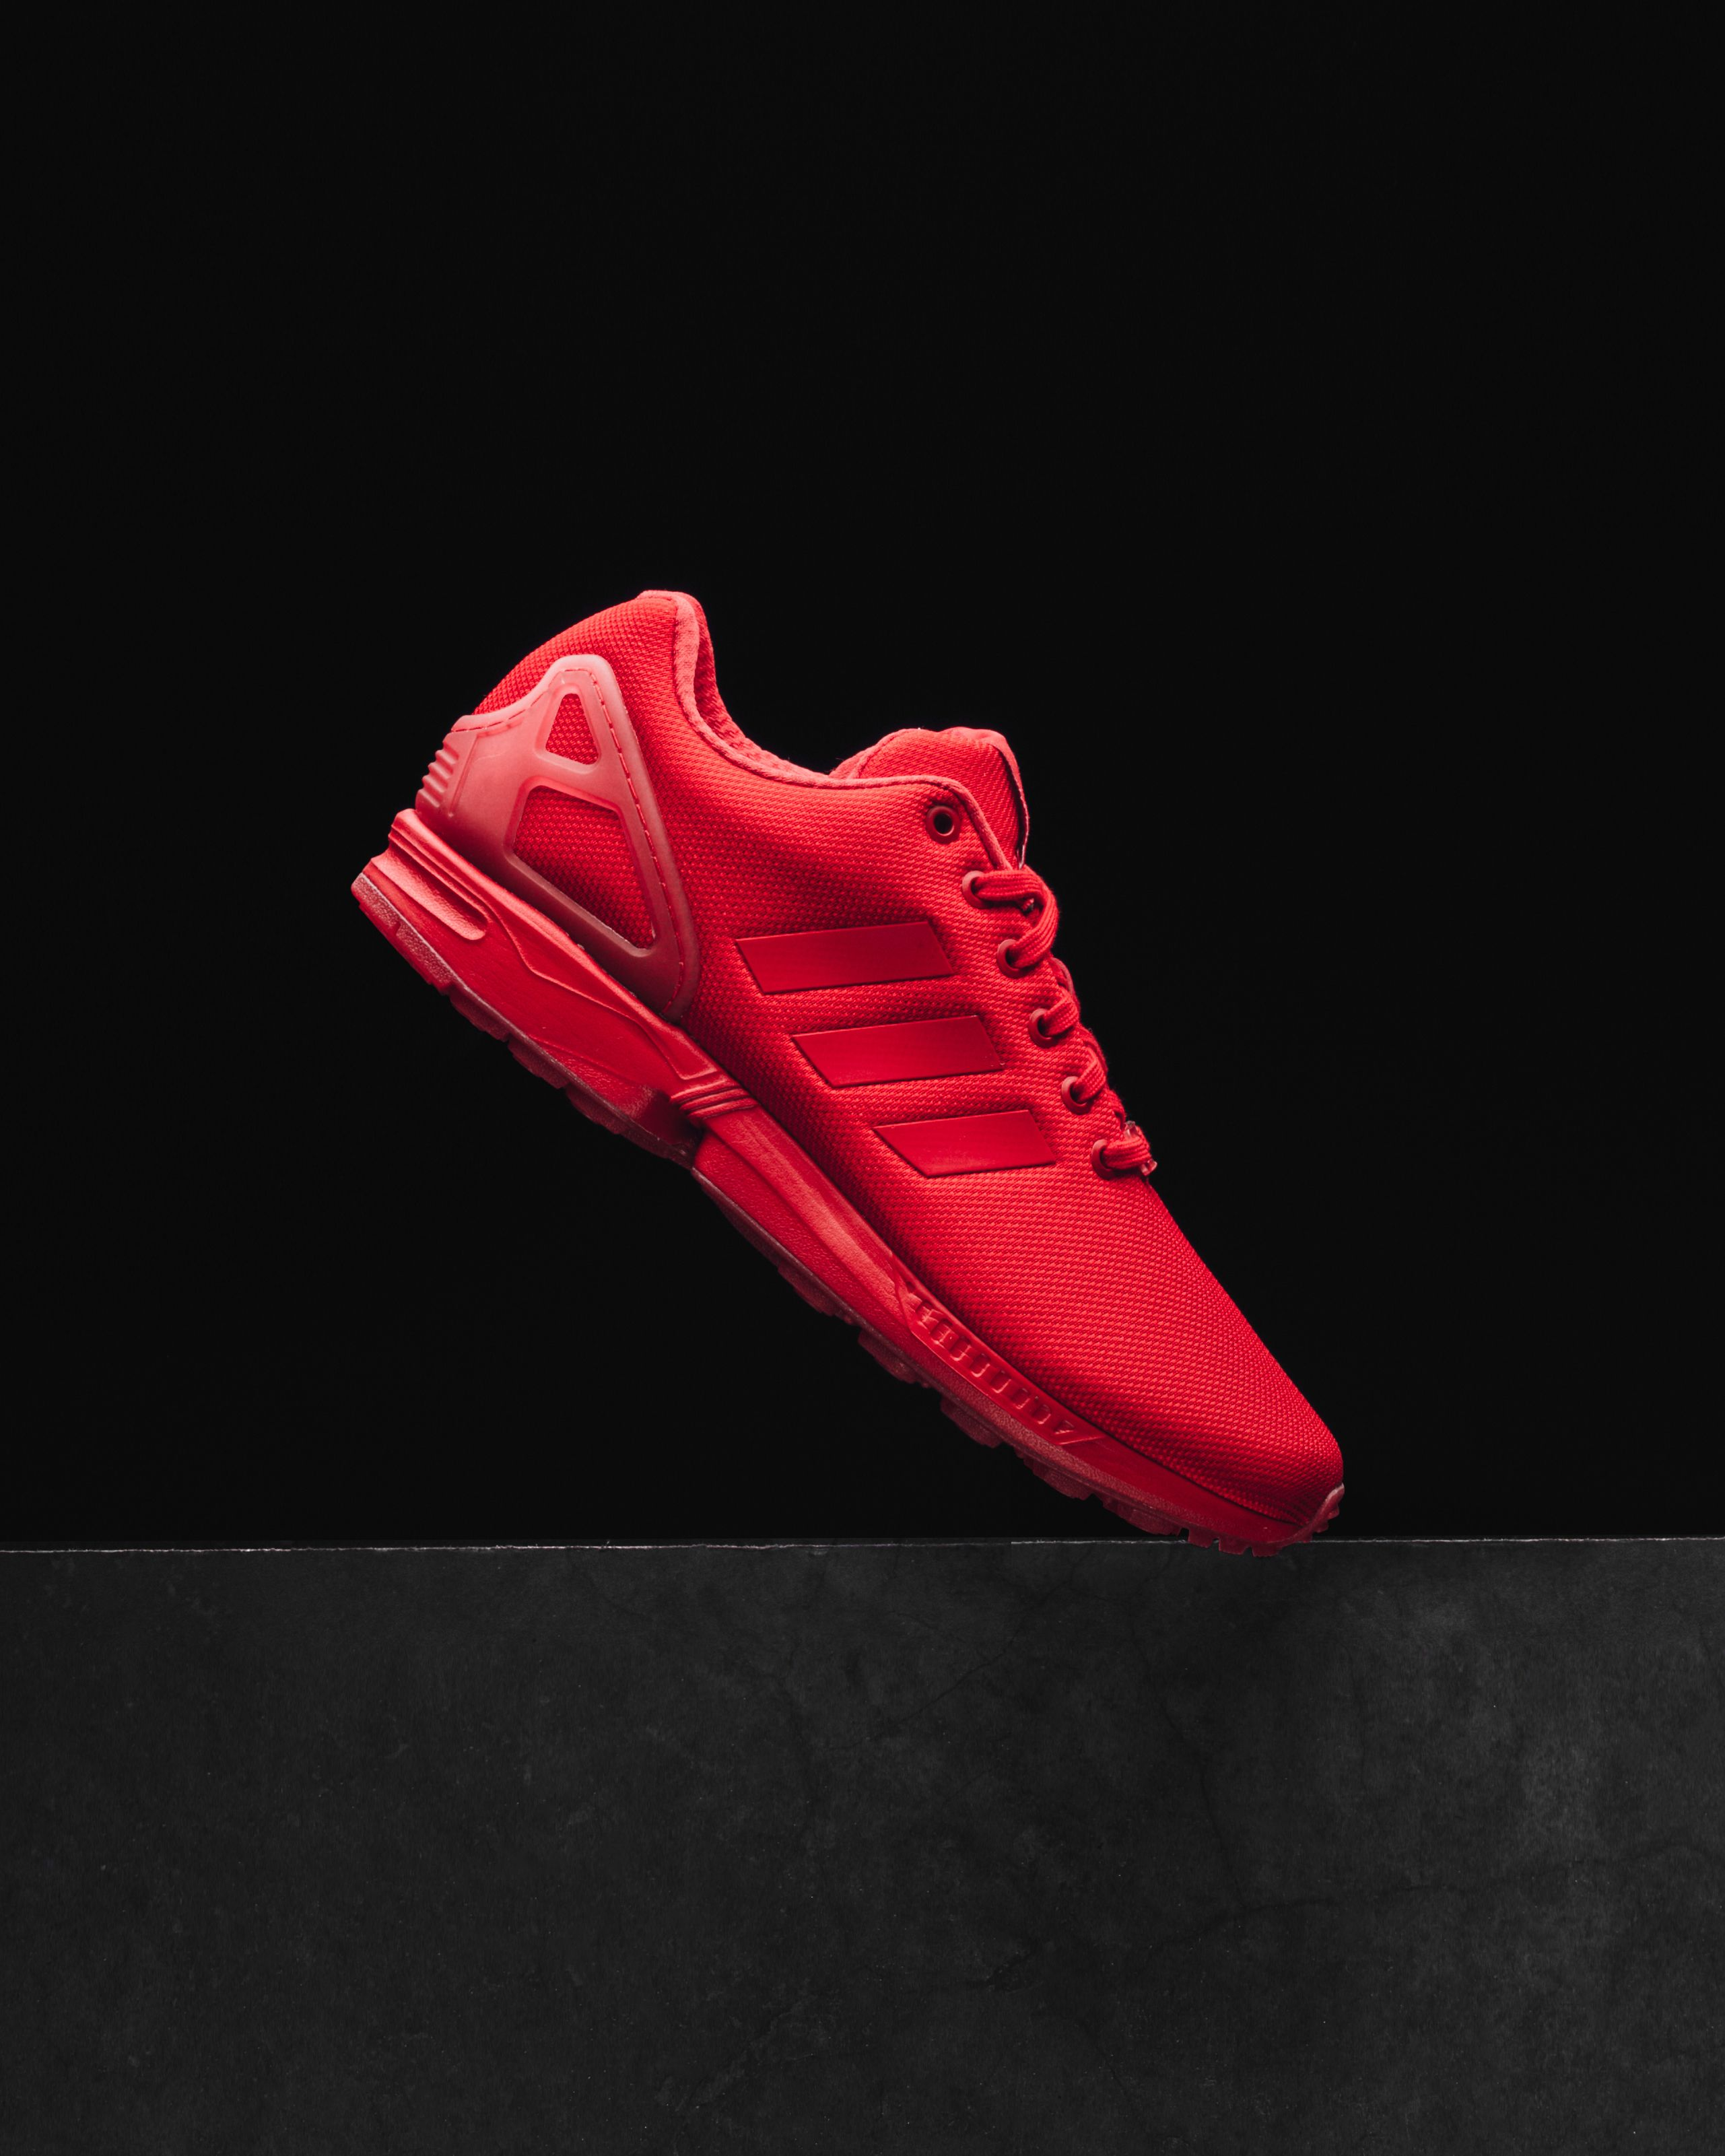 finest selection 32789 fe968 Adidas Originals ZX Flux in Red  Adidas  ZXFlux  Fashion  Streetwear  Style